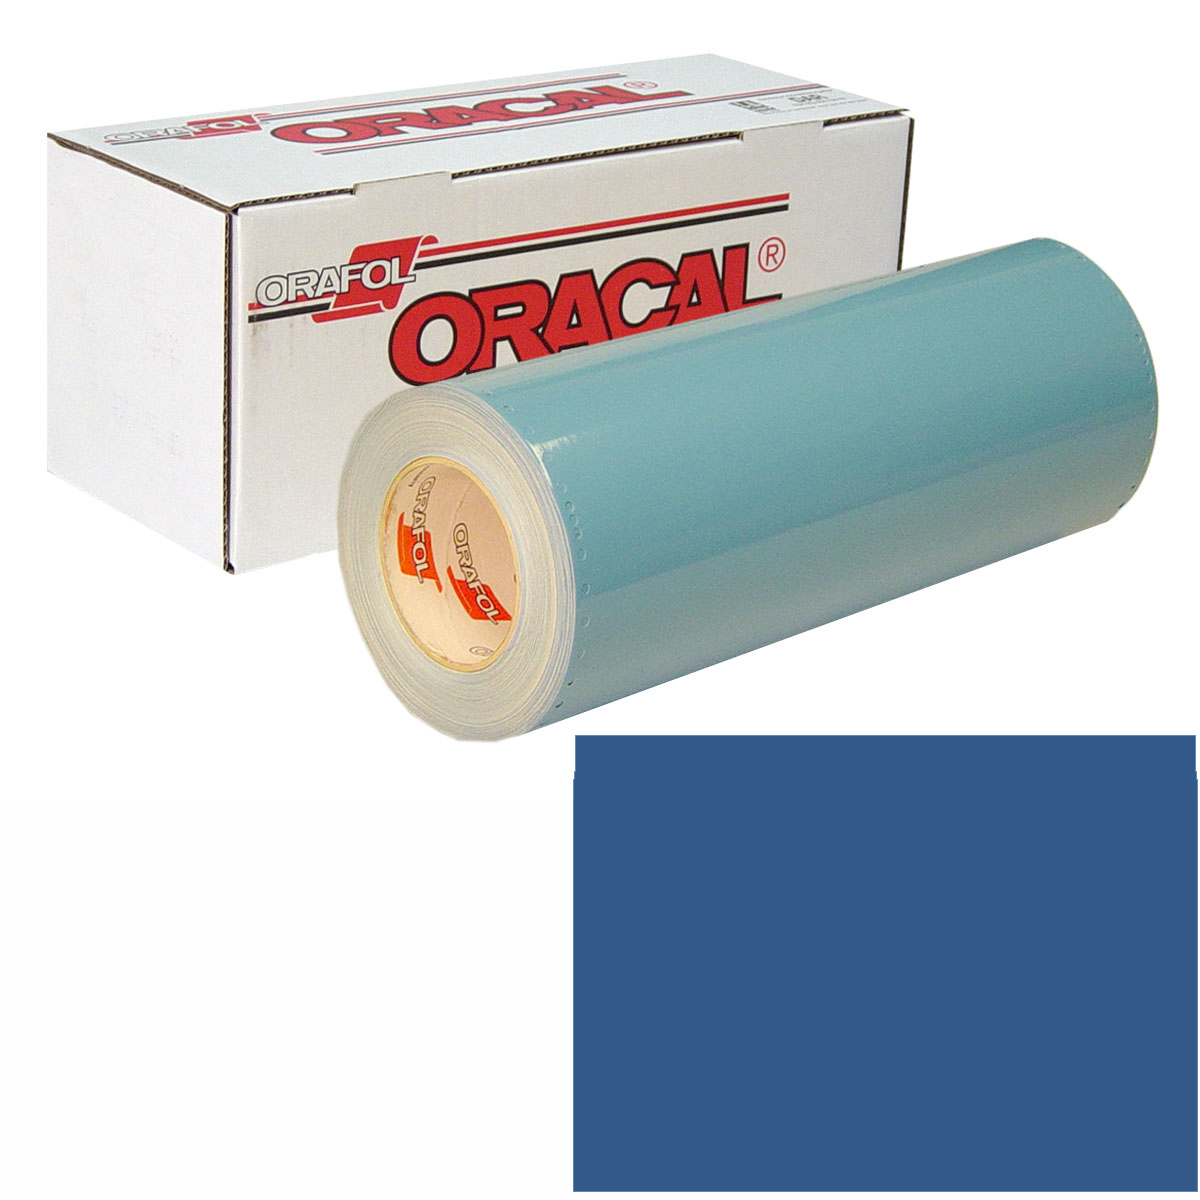 ORACAL 751 15In X 50Yd 050 Dark Blue